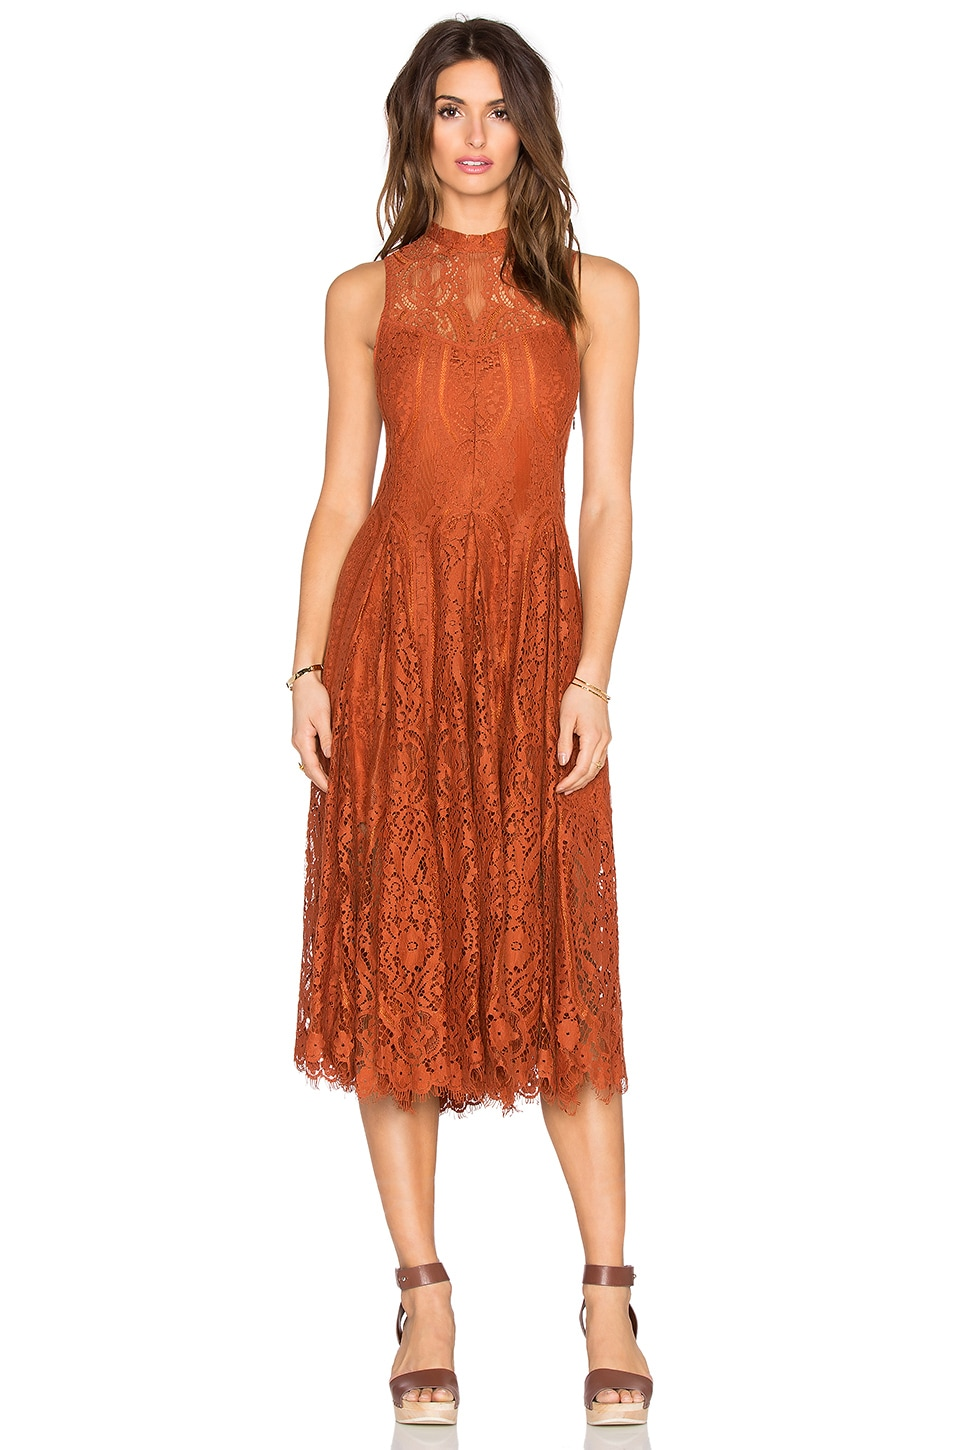 Free People Lace Trapeze Midi Dress in Copper